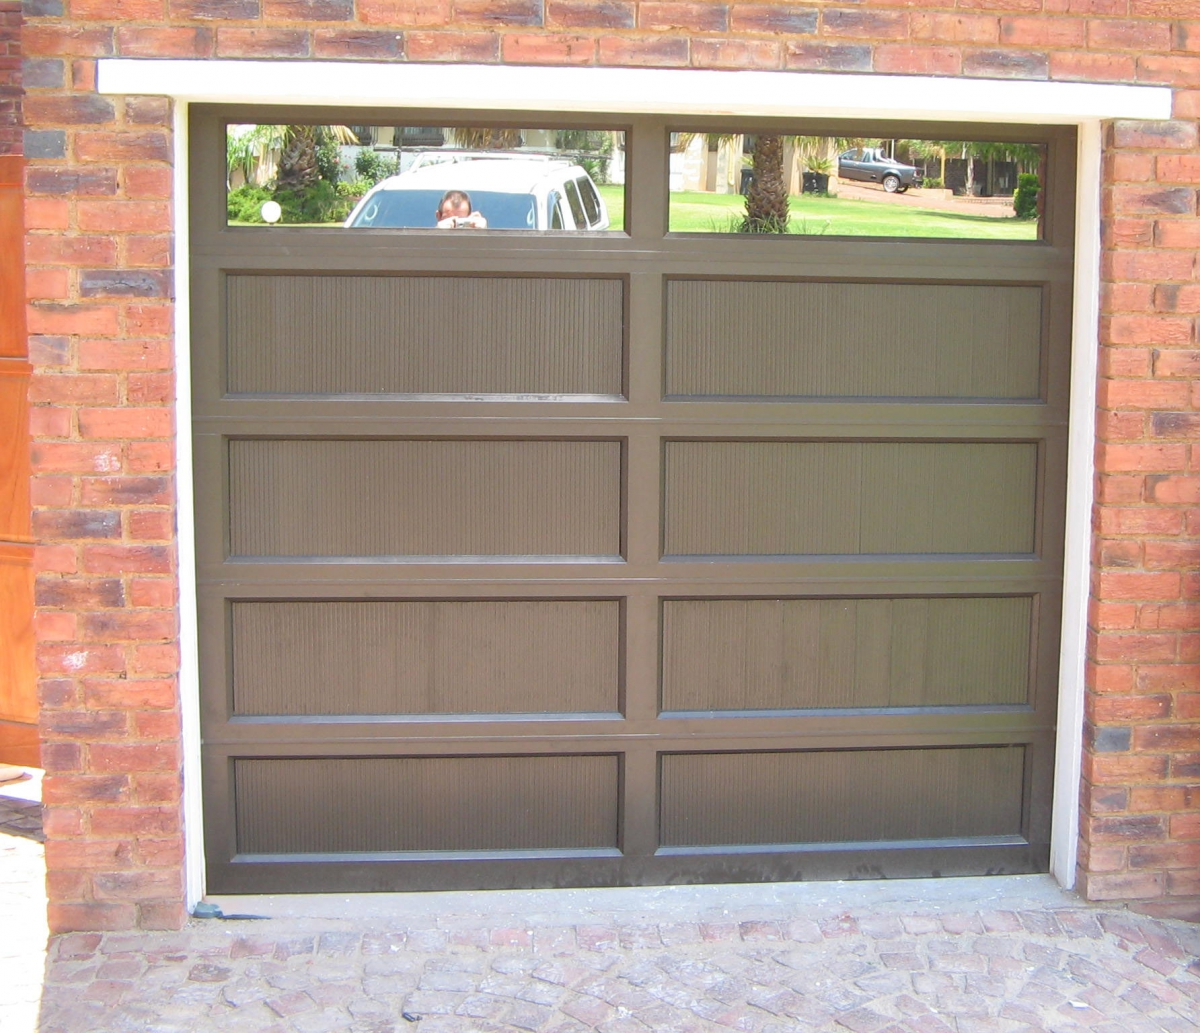 1033 #B04D1B Garage Doors Delarey Welding pic Sectional Steel Garage Doors 35911200